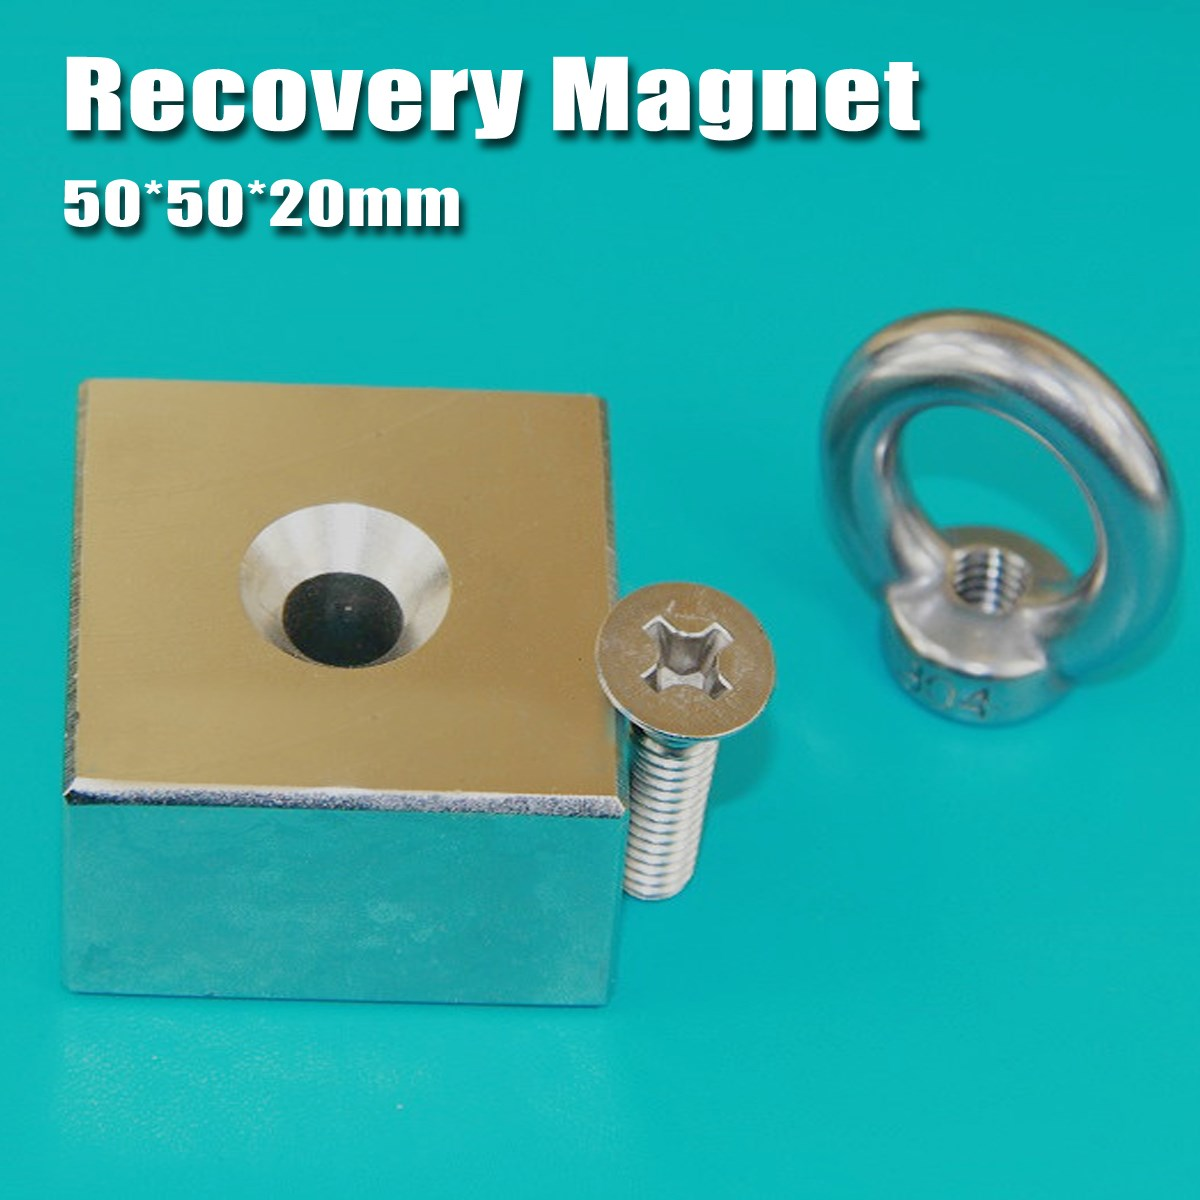 1Pc 50x50x20mm Recovery Magnet Cuboid Square Block Powerful Neodymium Recovery Magnet Metal Detector with Handle Ringscrew network recovery